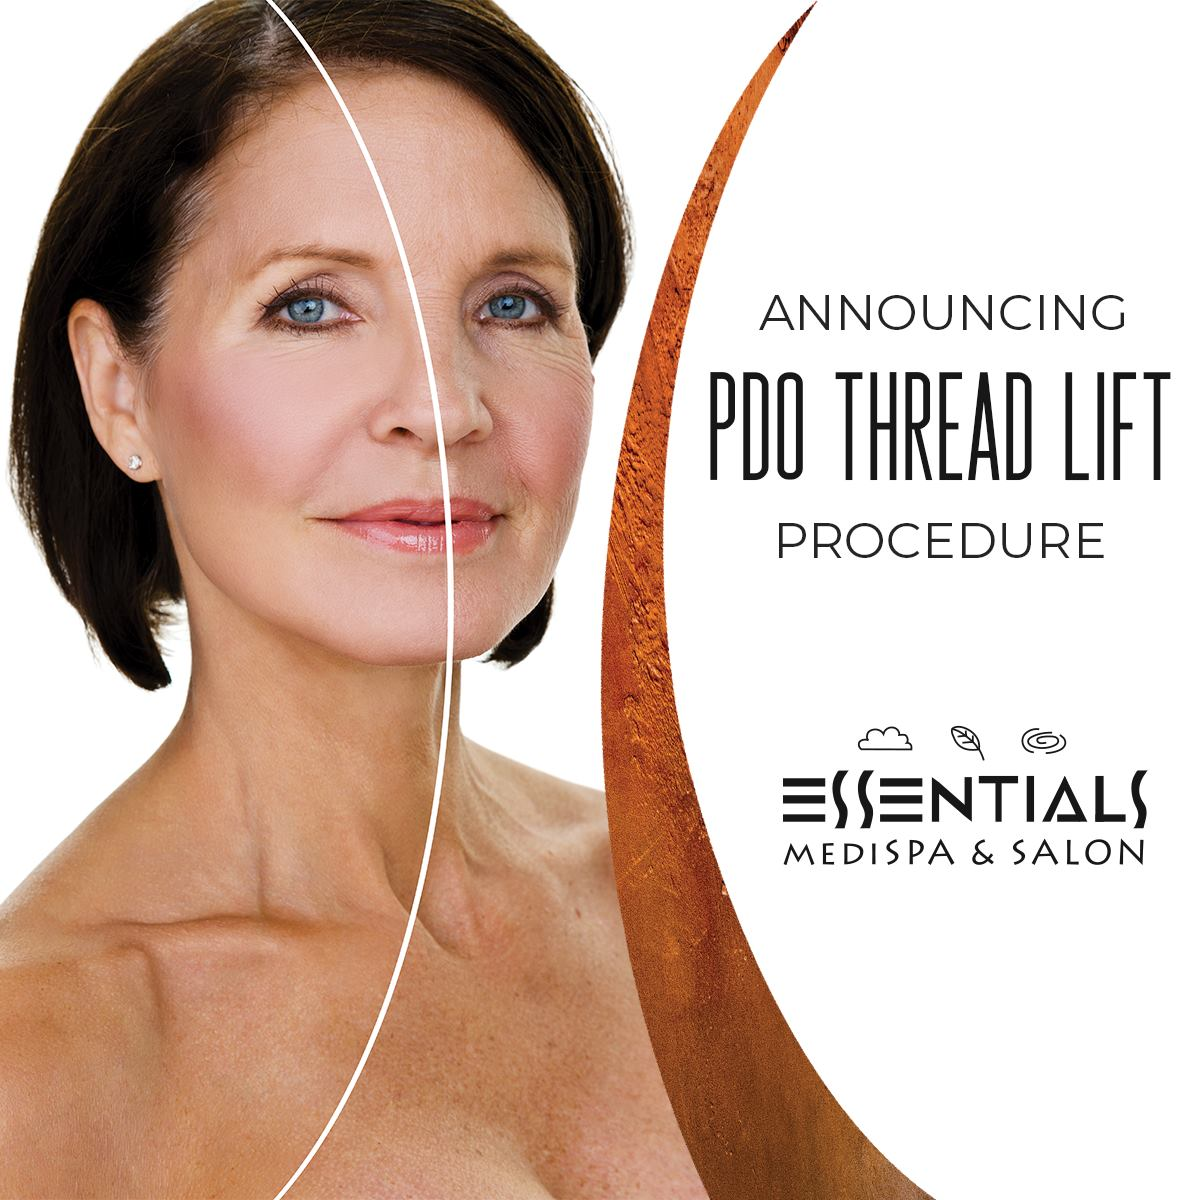 PDO Thread Lifts: an Exciting New Service Offered at